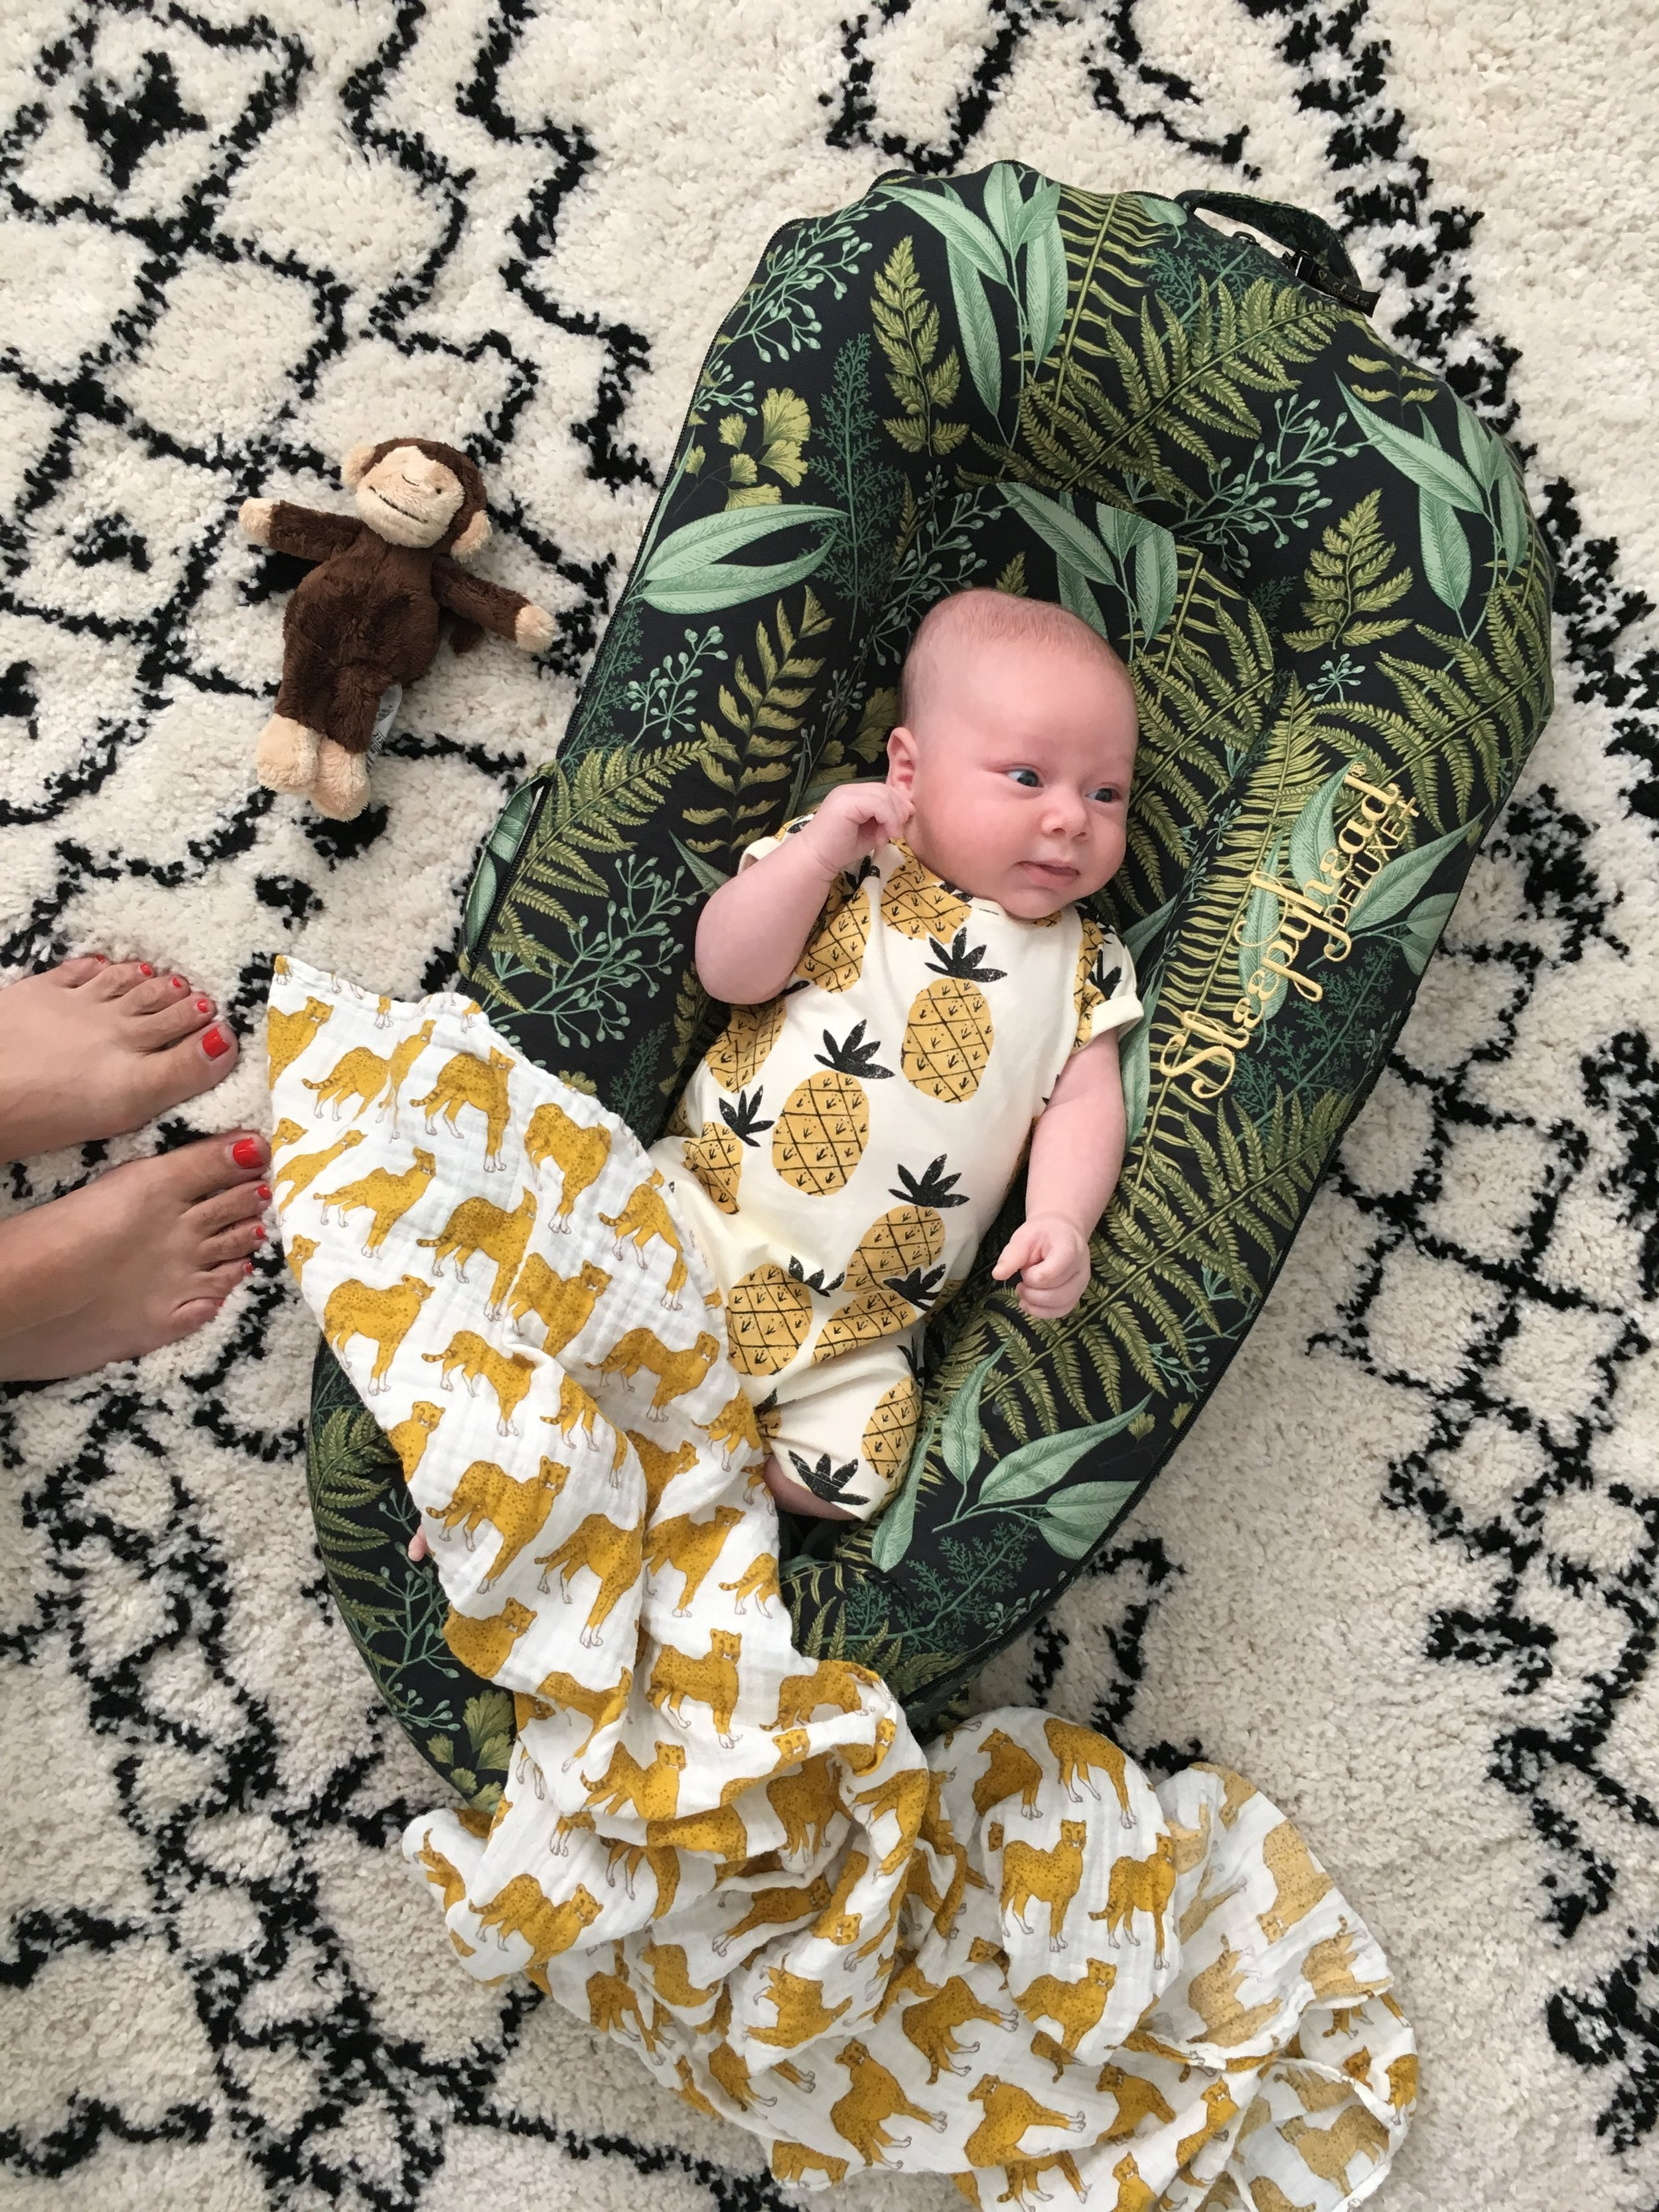 Night falls   sleepyhead deluxe+   85 euros, Leopard muslin £18.50 from   crane bump and baby ,  Pineapple romper £6 from   next